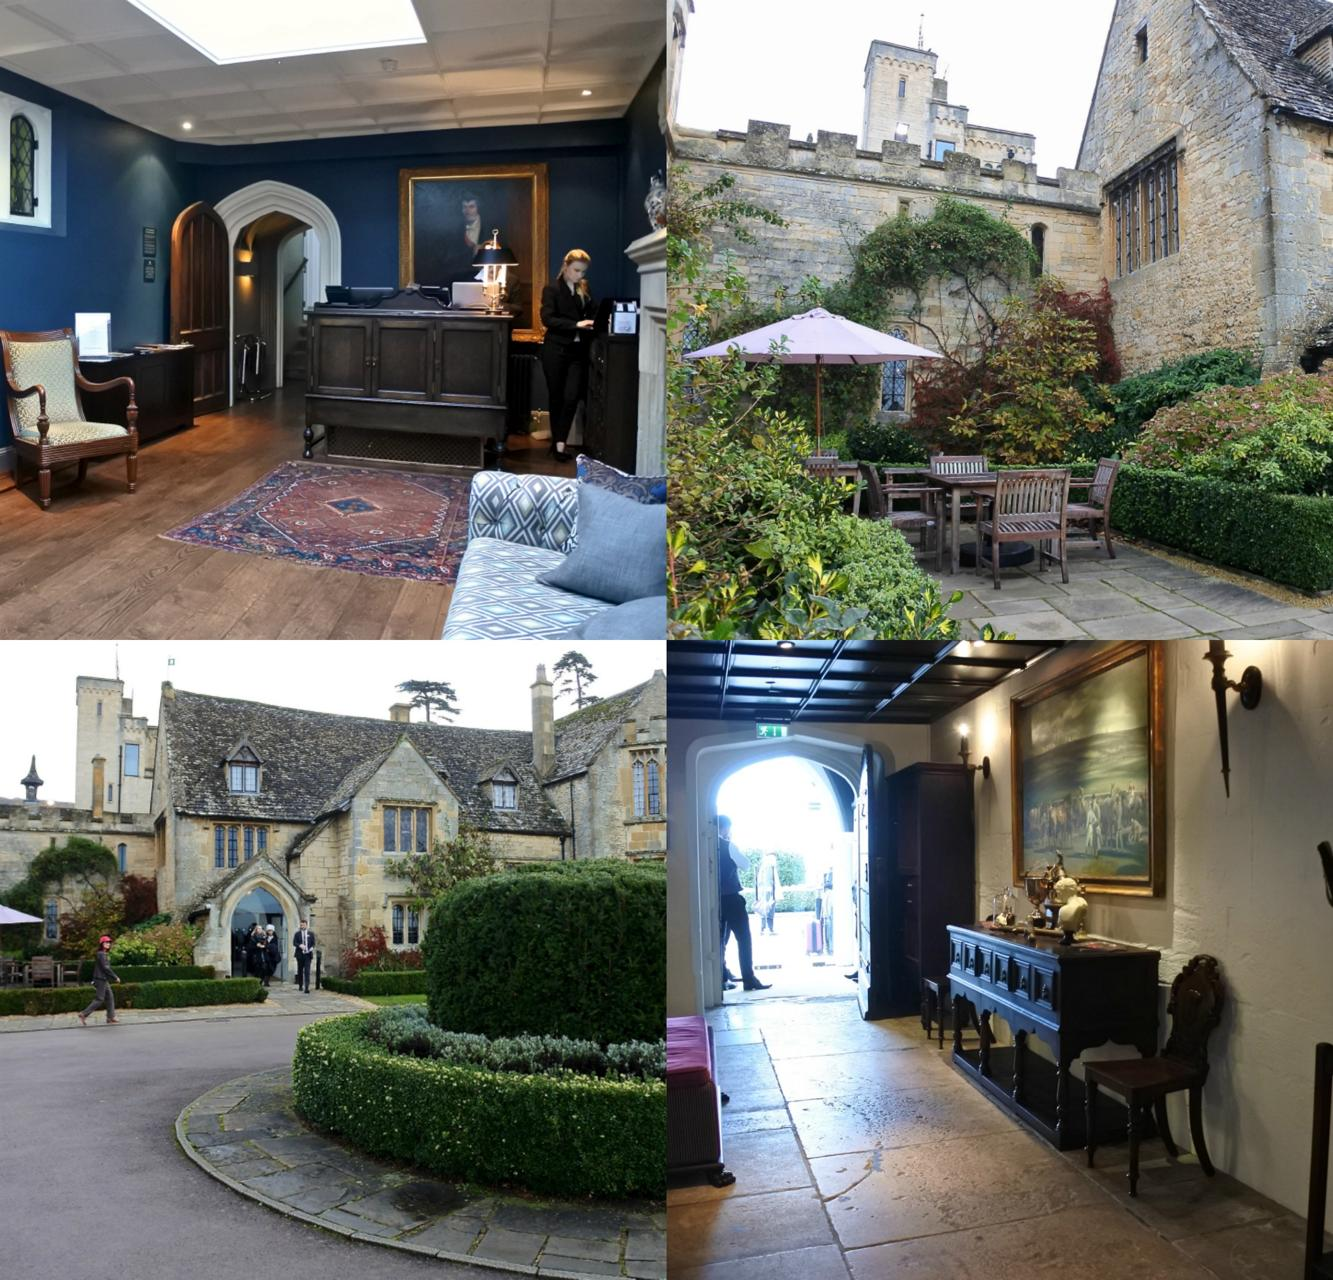 th_Ellenborough Park_2